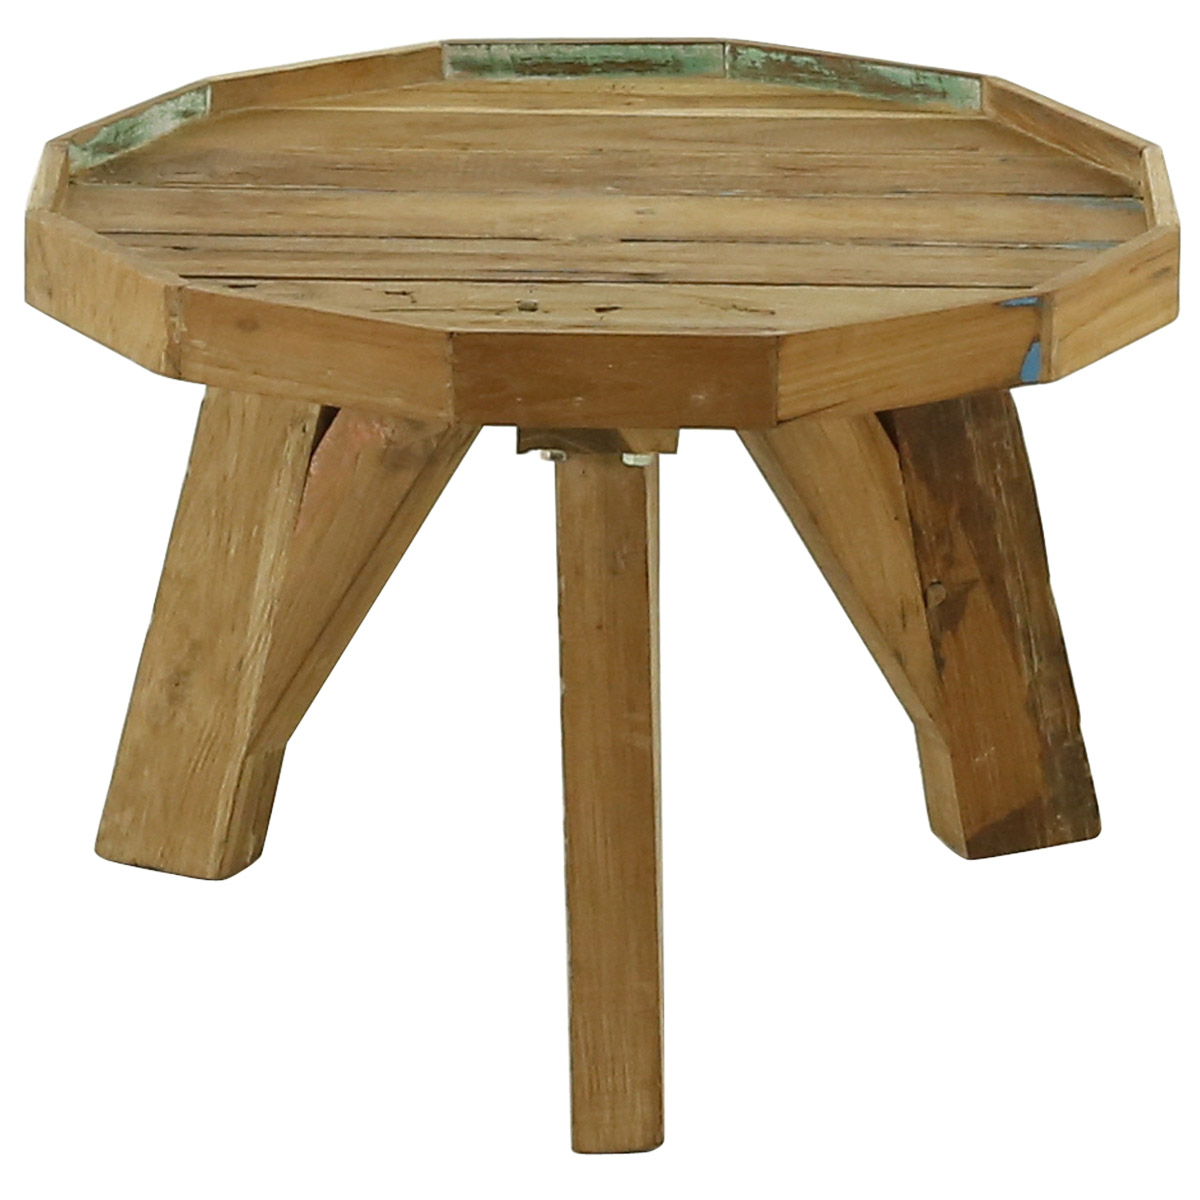 Table basse ronde en bois 50 cm